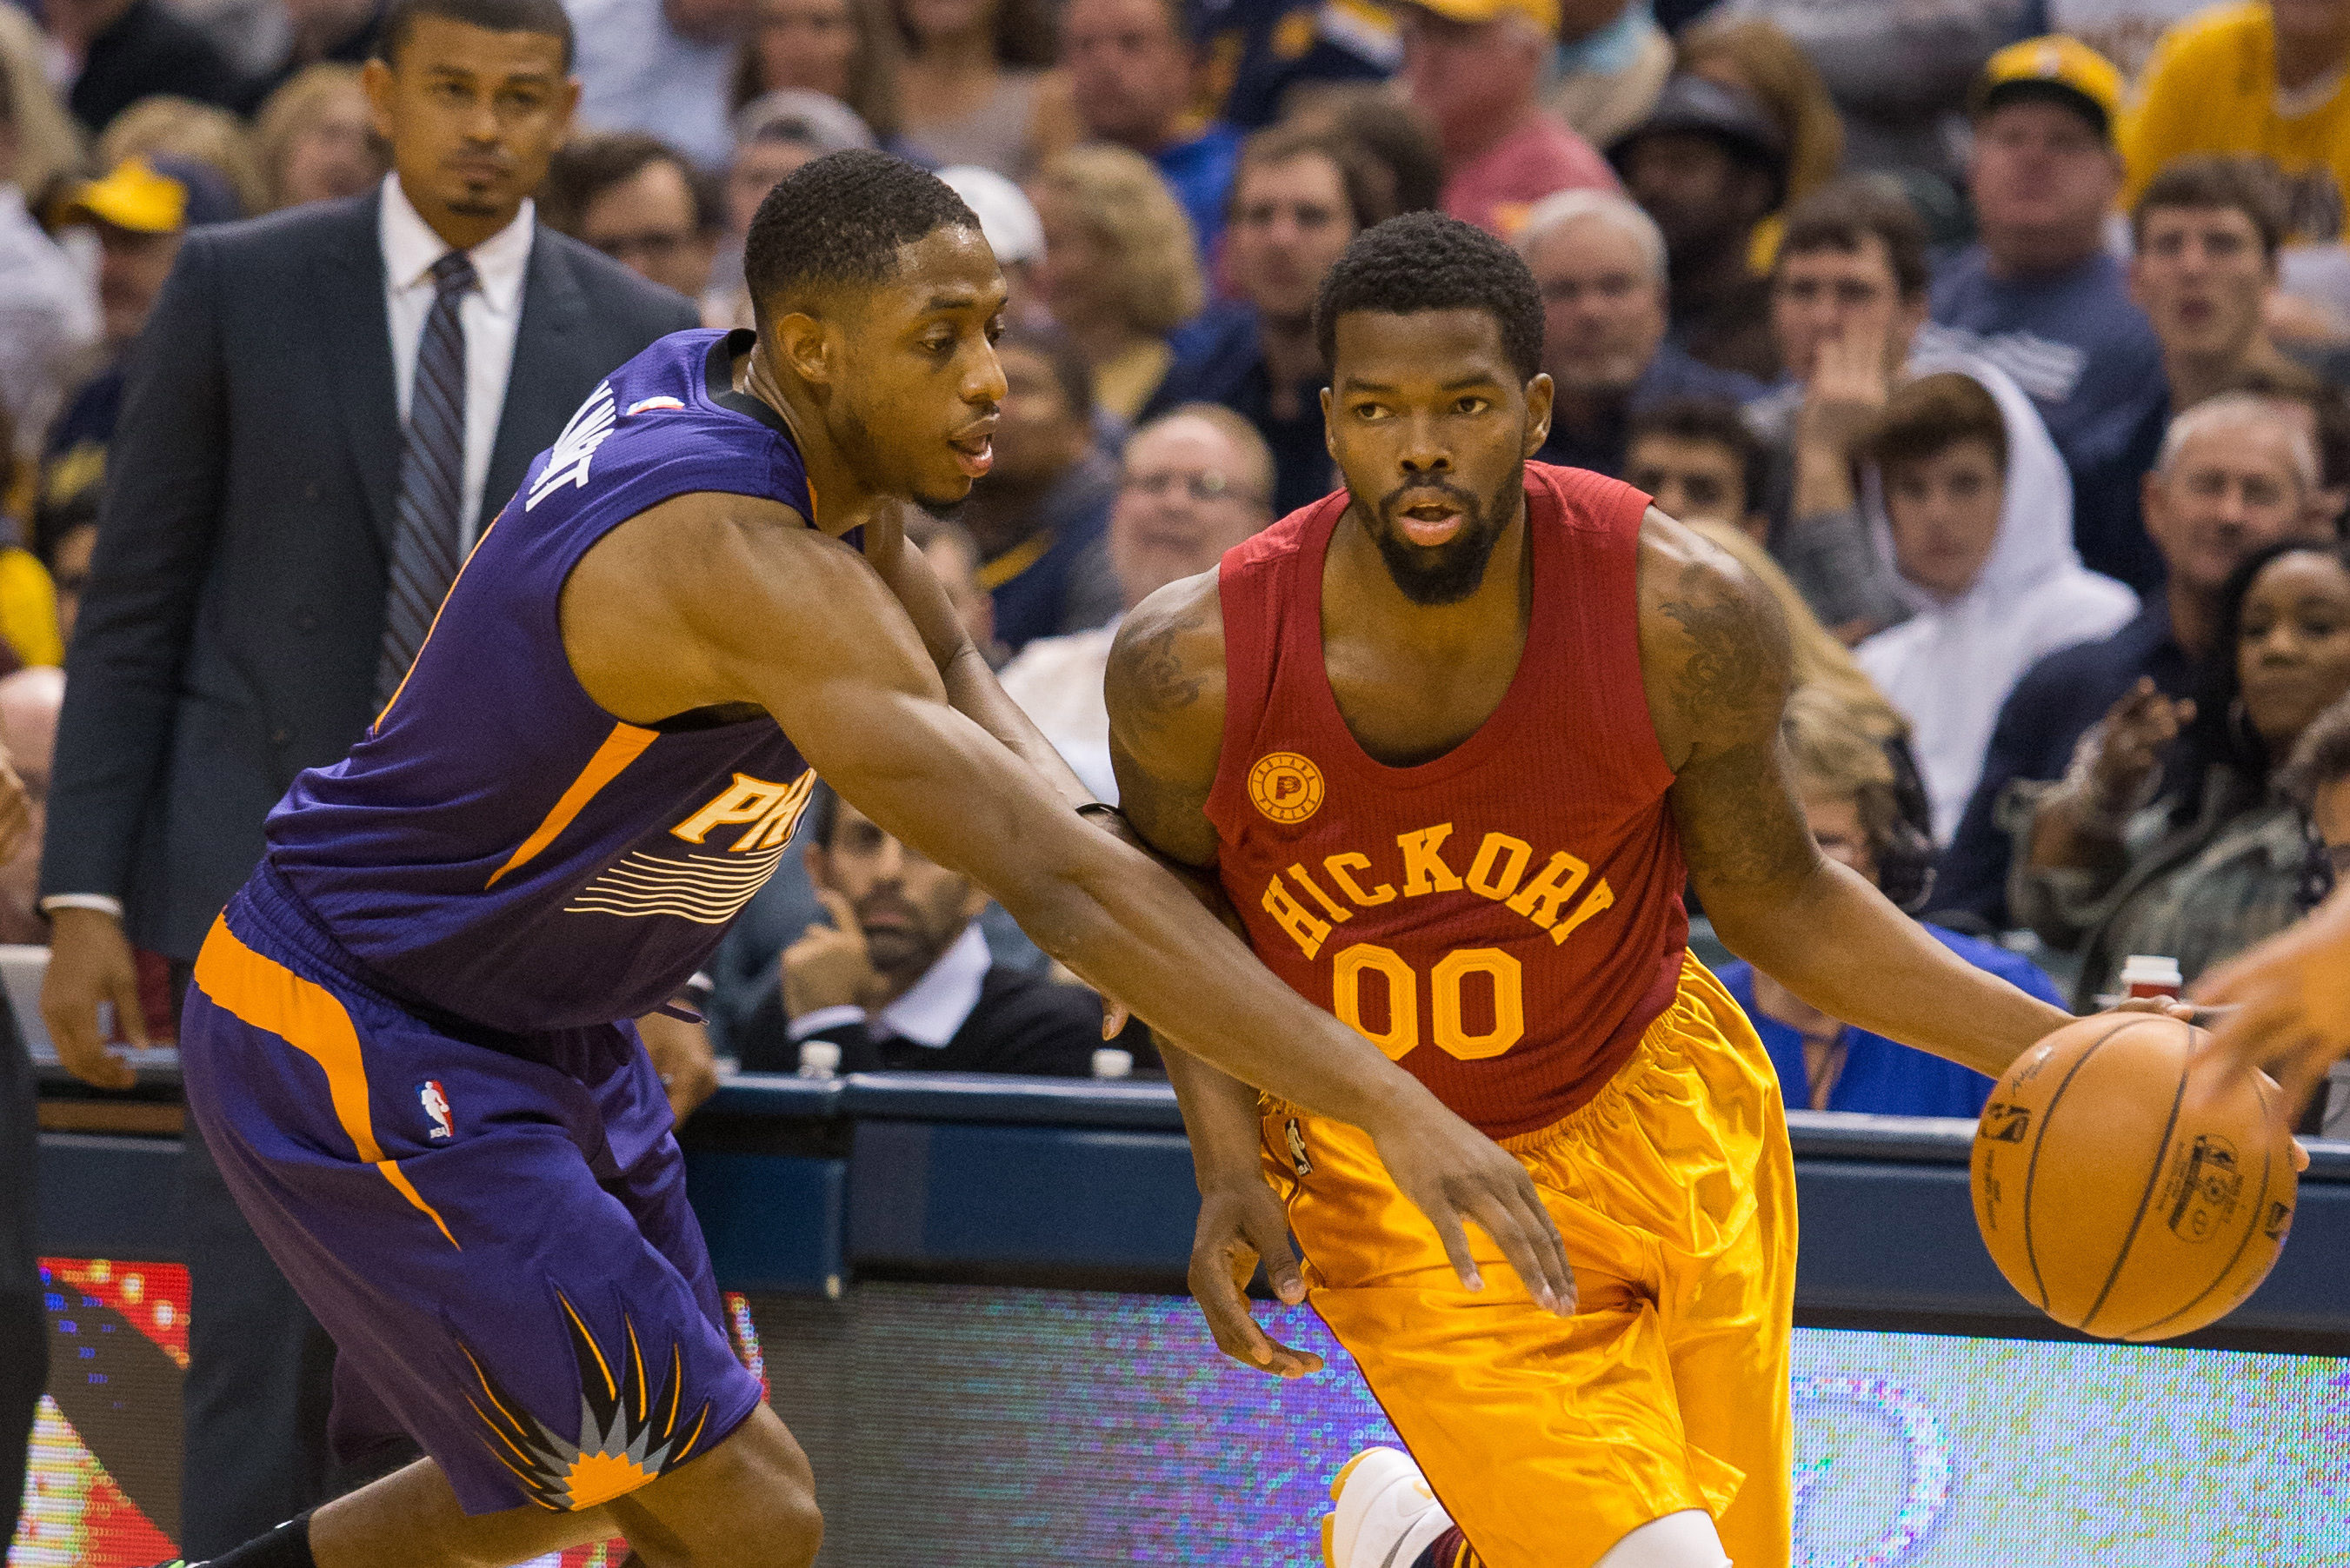 Nov 18 2016 Indianapolis IN USA Indiana Pacers Guard Aaron Brooks 00 Dribbles The Ball While Phoenix Suns Brandon Knight 11 Defends In